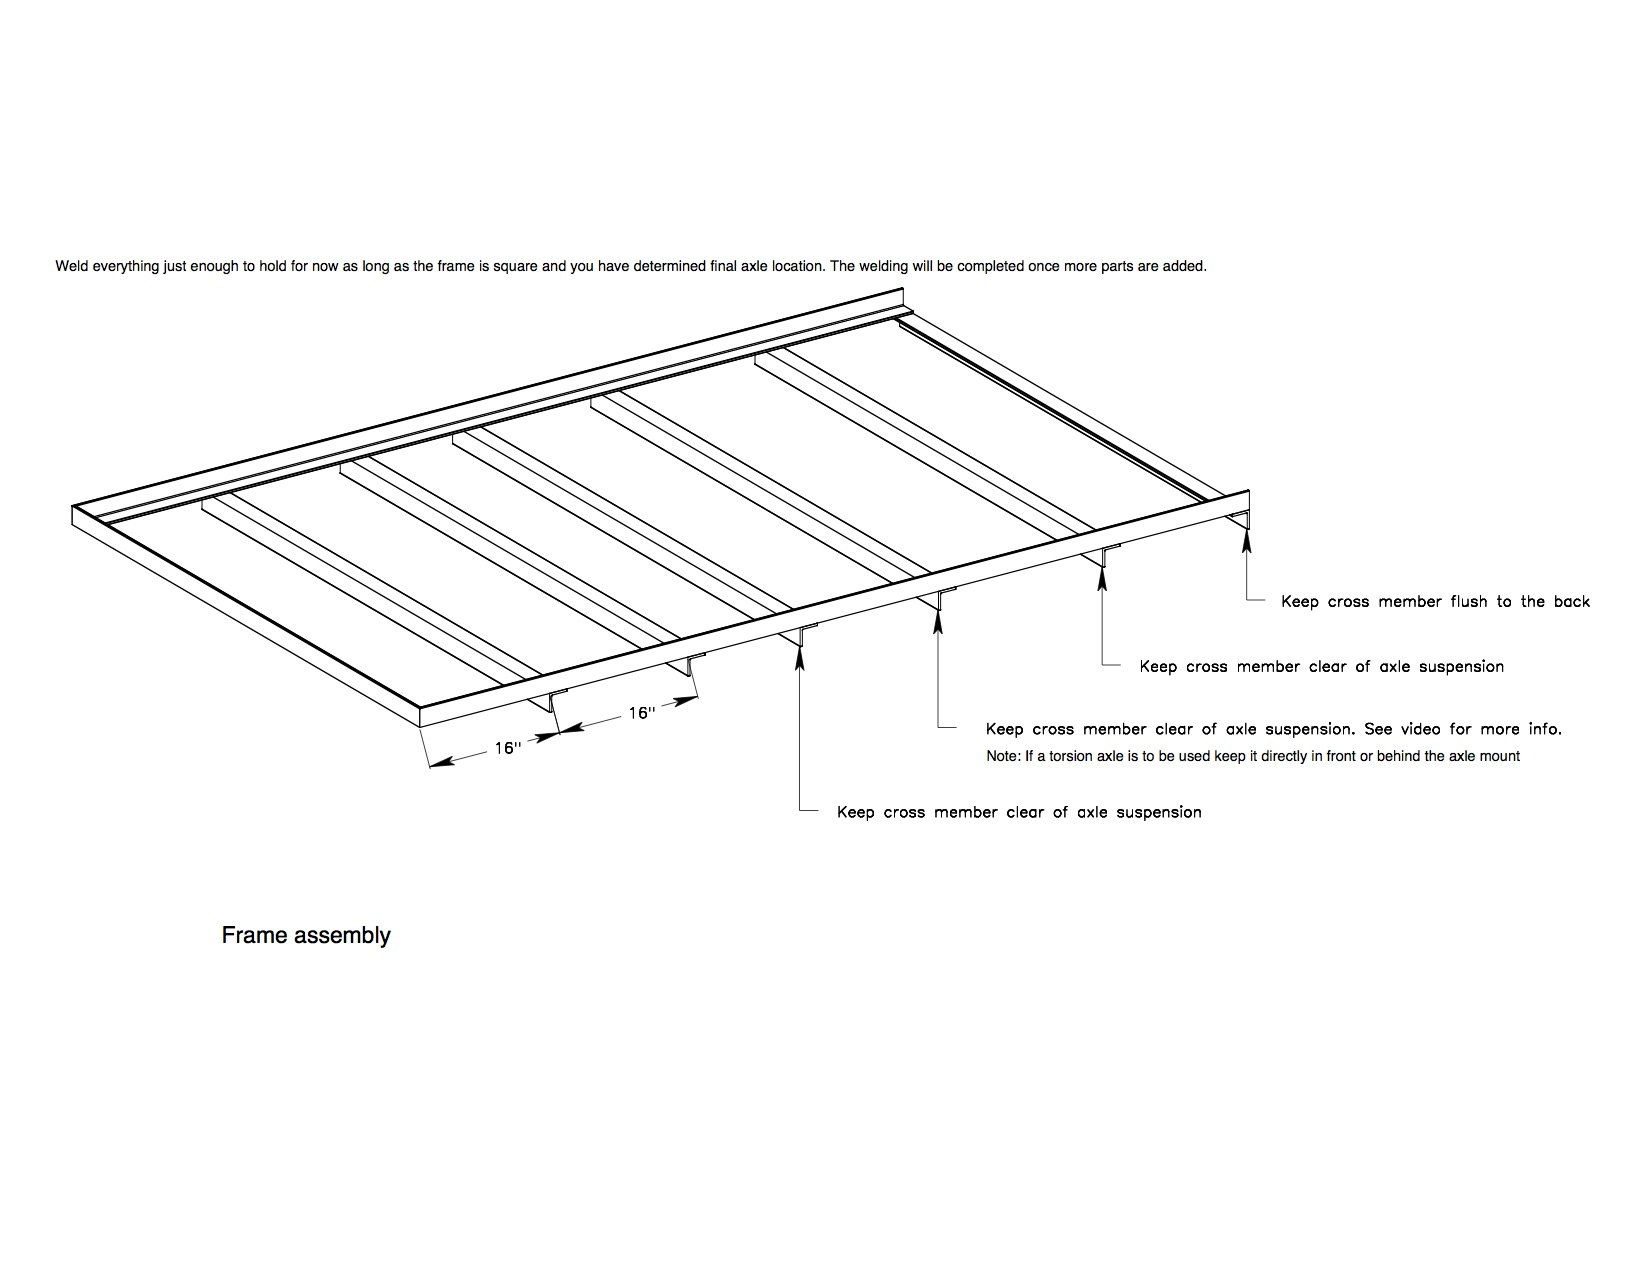 C er Design Plans likewise Cargo Trailer Floor Plan in addition A Frame C er Plans in addition Img Static ridefinds   match Teardrop 300 further Diy Motorcycle Lift Table Plans. on 5x8 homemade camper plans